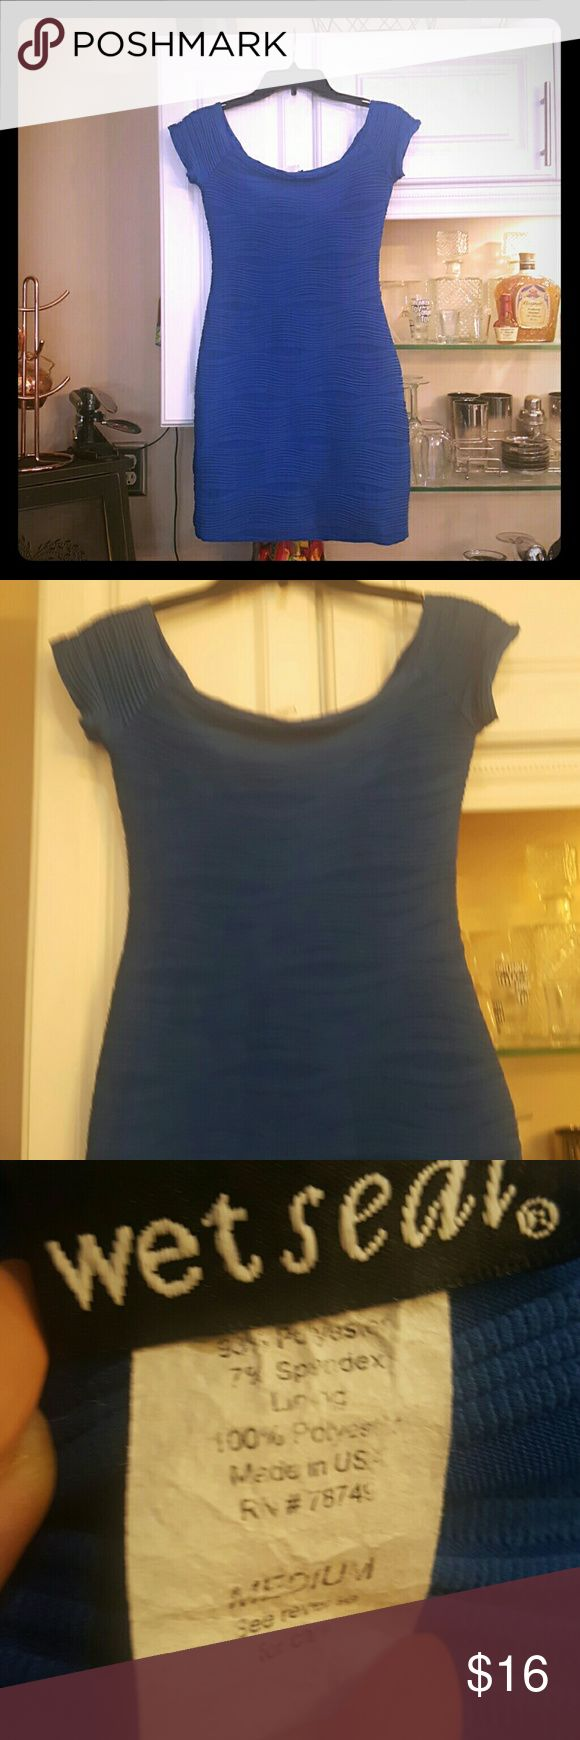 Blue wet seal bodycon dress Blue bodycon dress from wet seal. The sleeves can be worn on or off the shoulder. Great for fancy occasions or can be worn for a night out. Size M. Wet Seal Dresses Mini